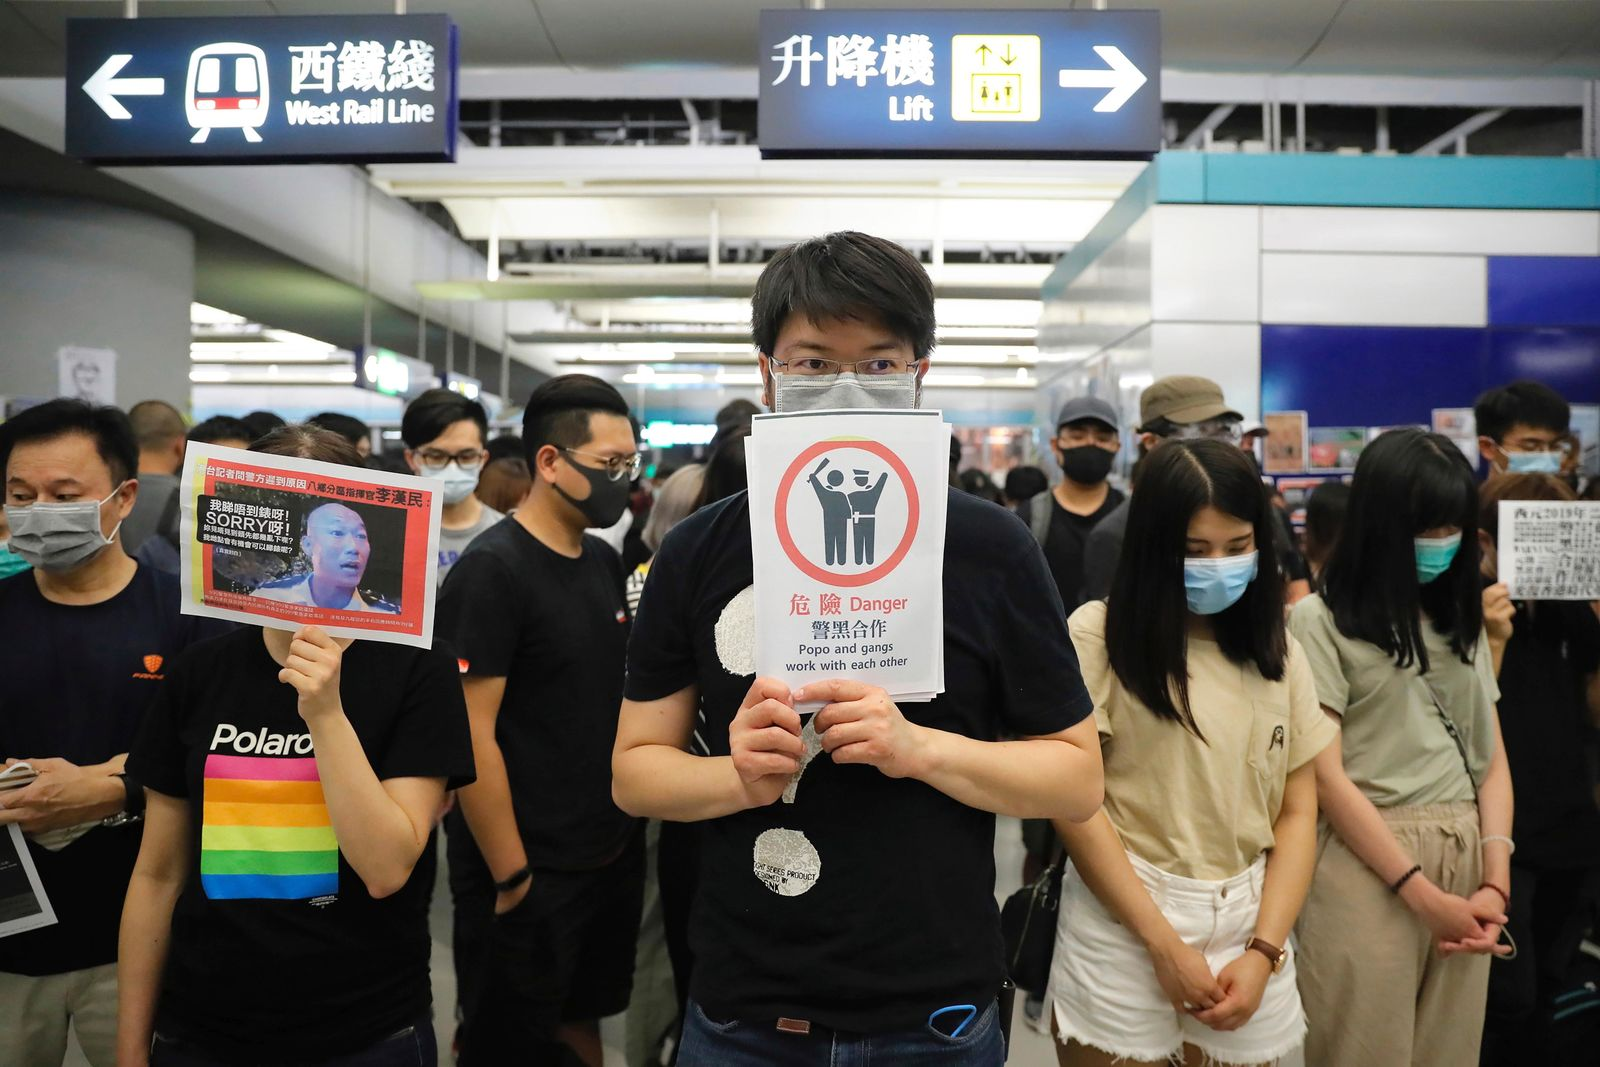 Demonstrators stand in silence during a protest at the Yuen Long MTR station in Hong Kong, Wednesday, Aug. 21, 2019.{ } (AP Photo/Kin Cheung)